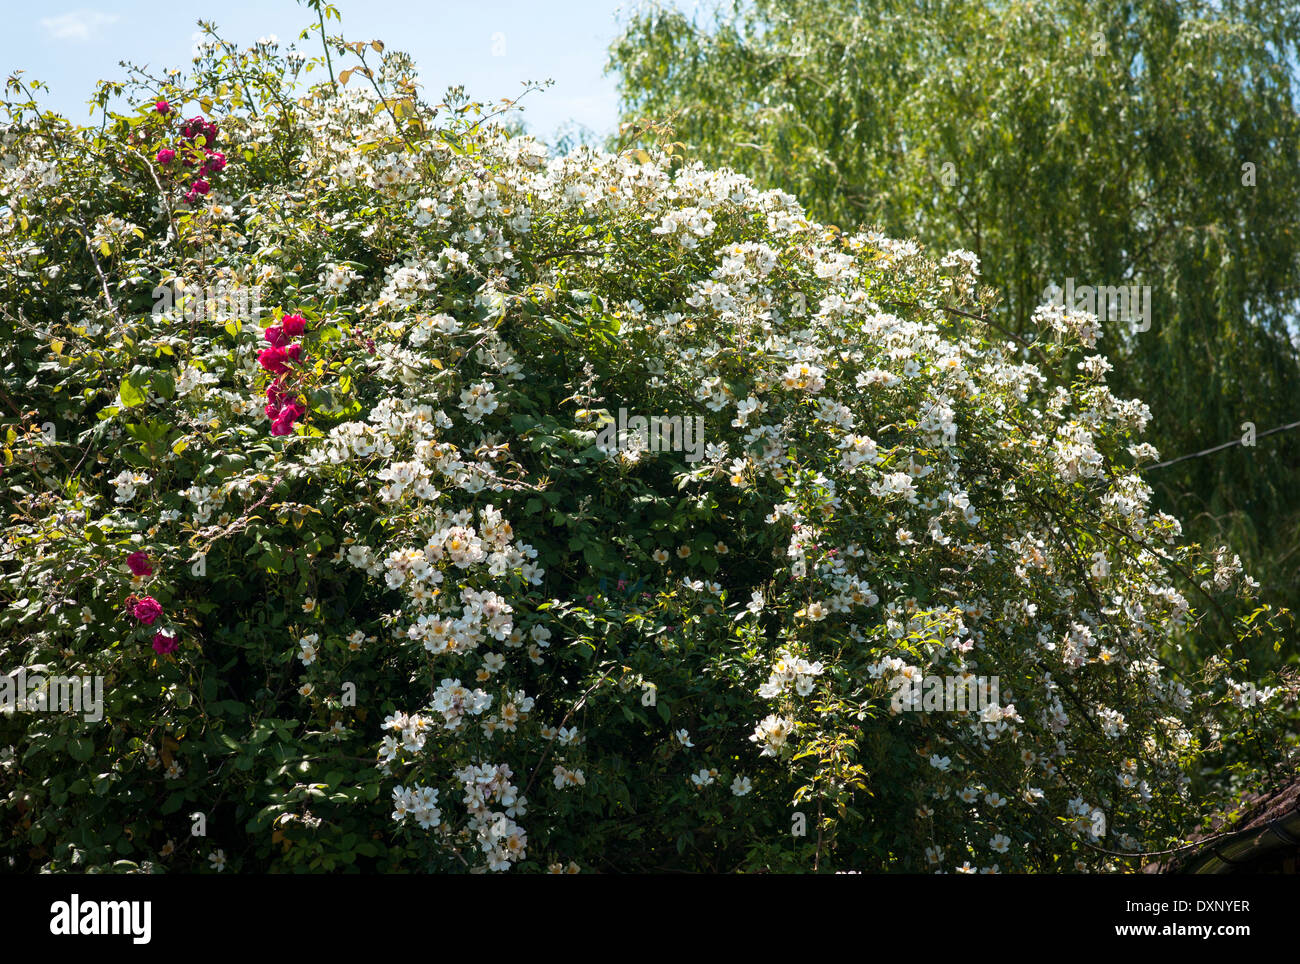 Rambling rose Wedding Day in an English garden in June - Stock Image